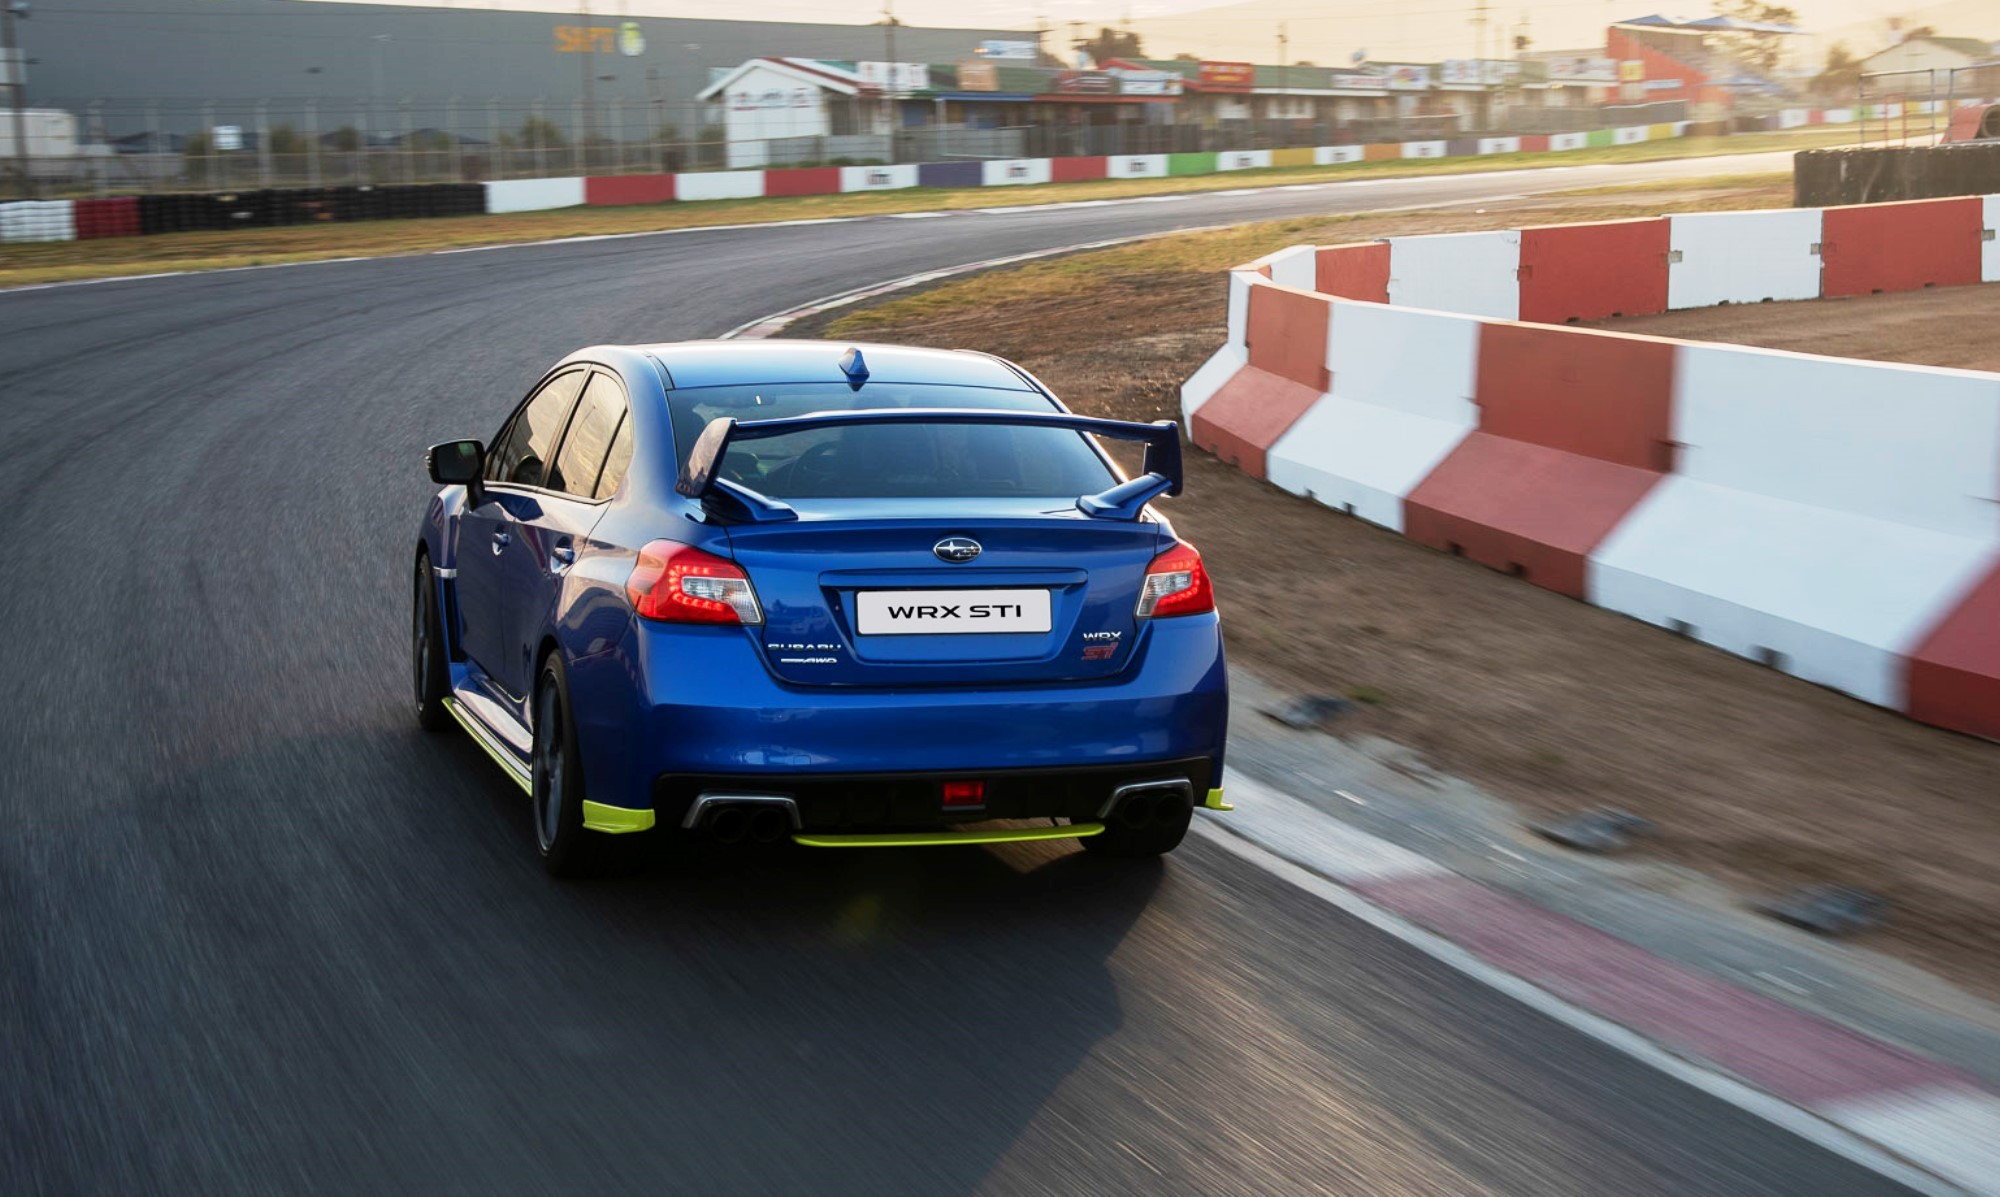 Subaru WRX STi Diamond Edition30 rear